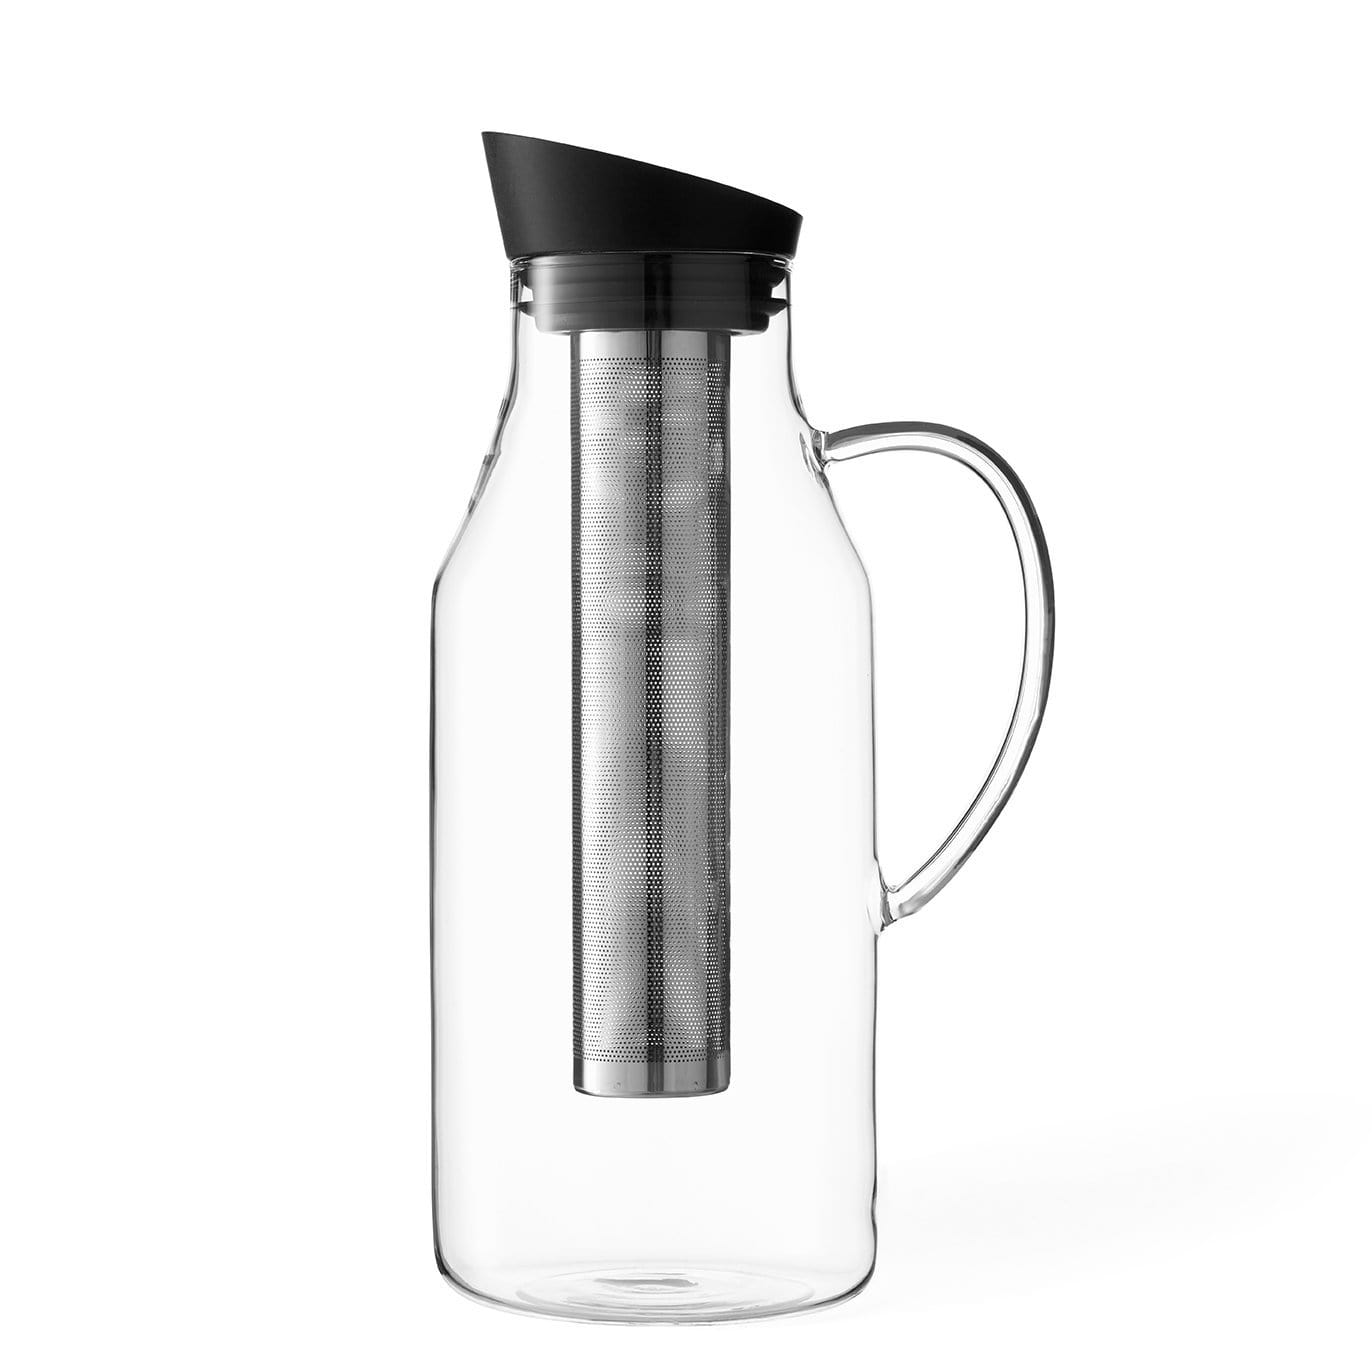 Infusion™ Iced Tea Maker - VIVA